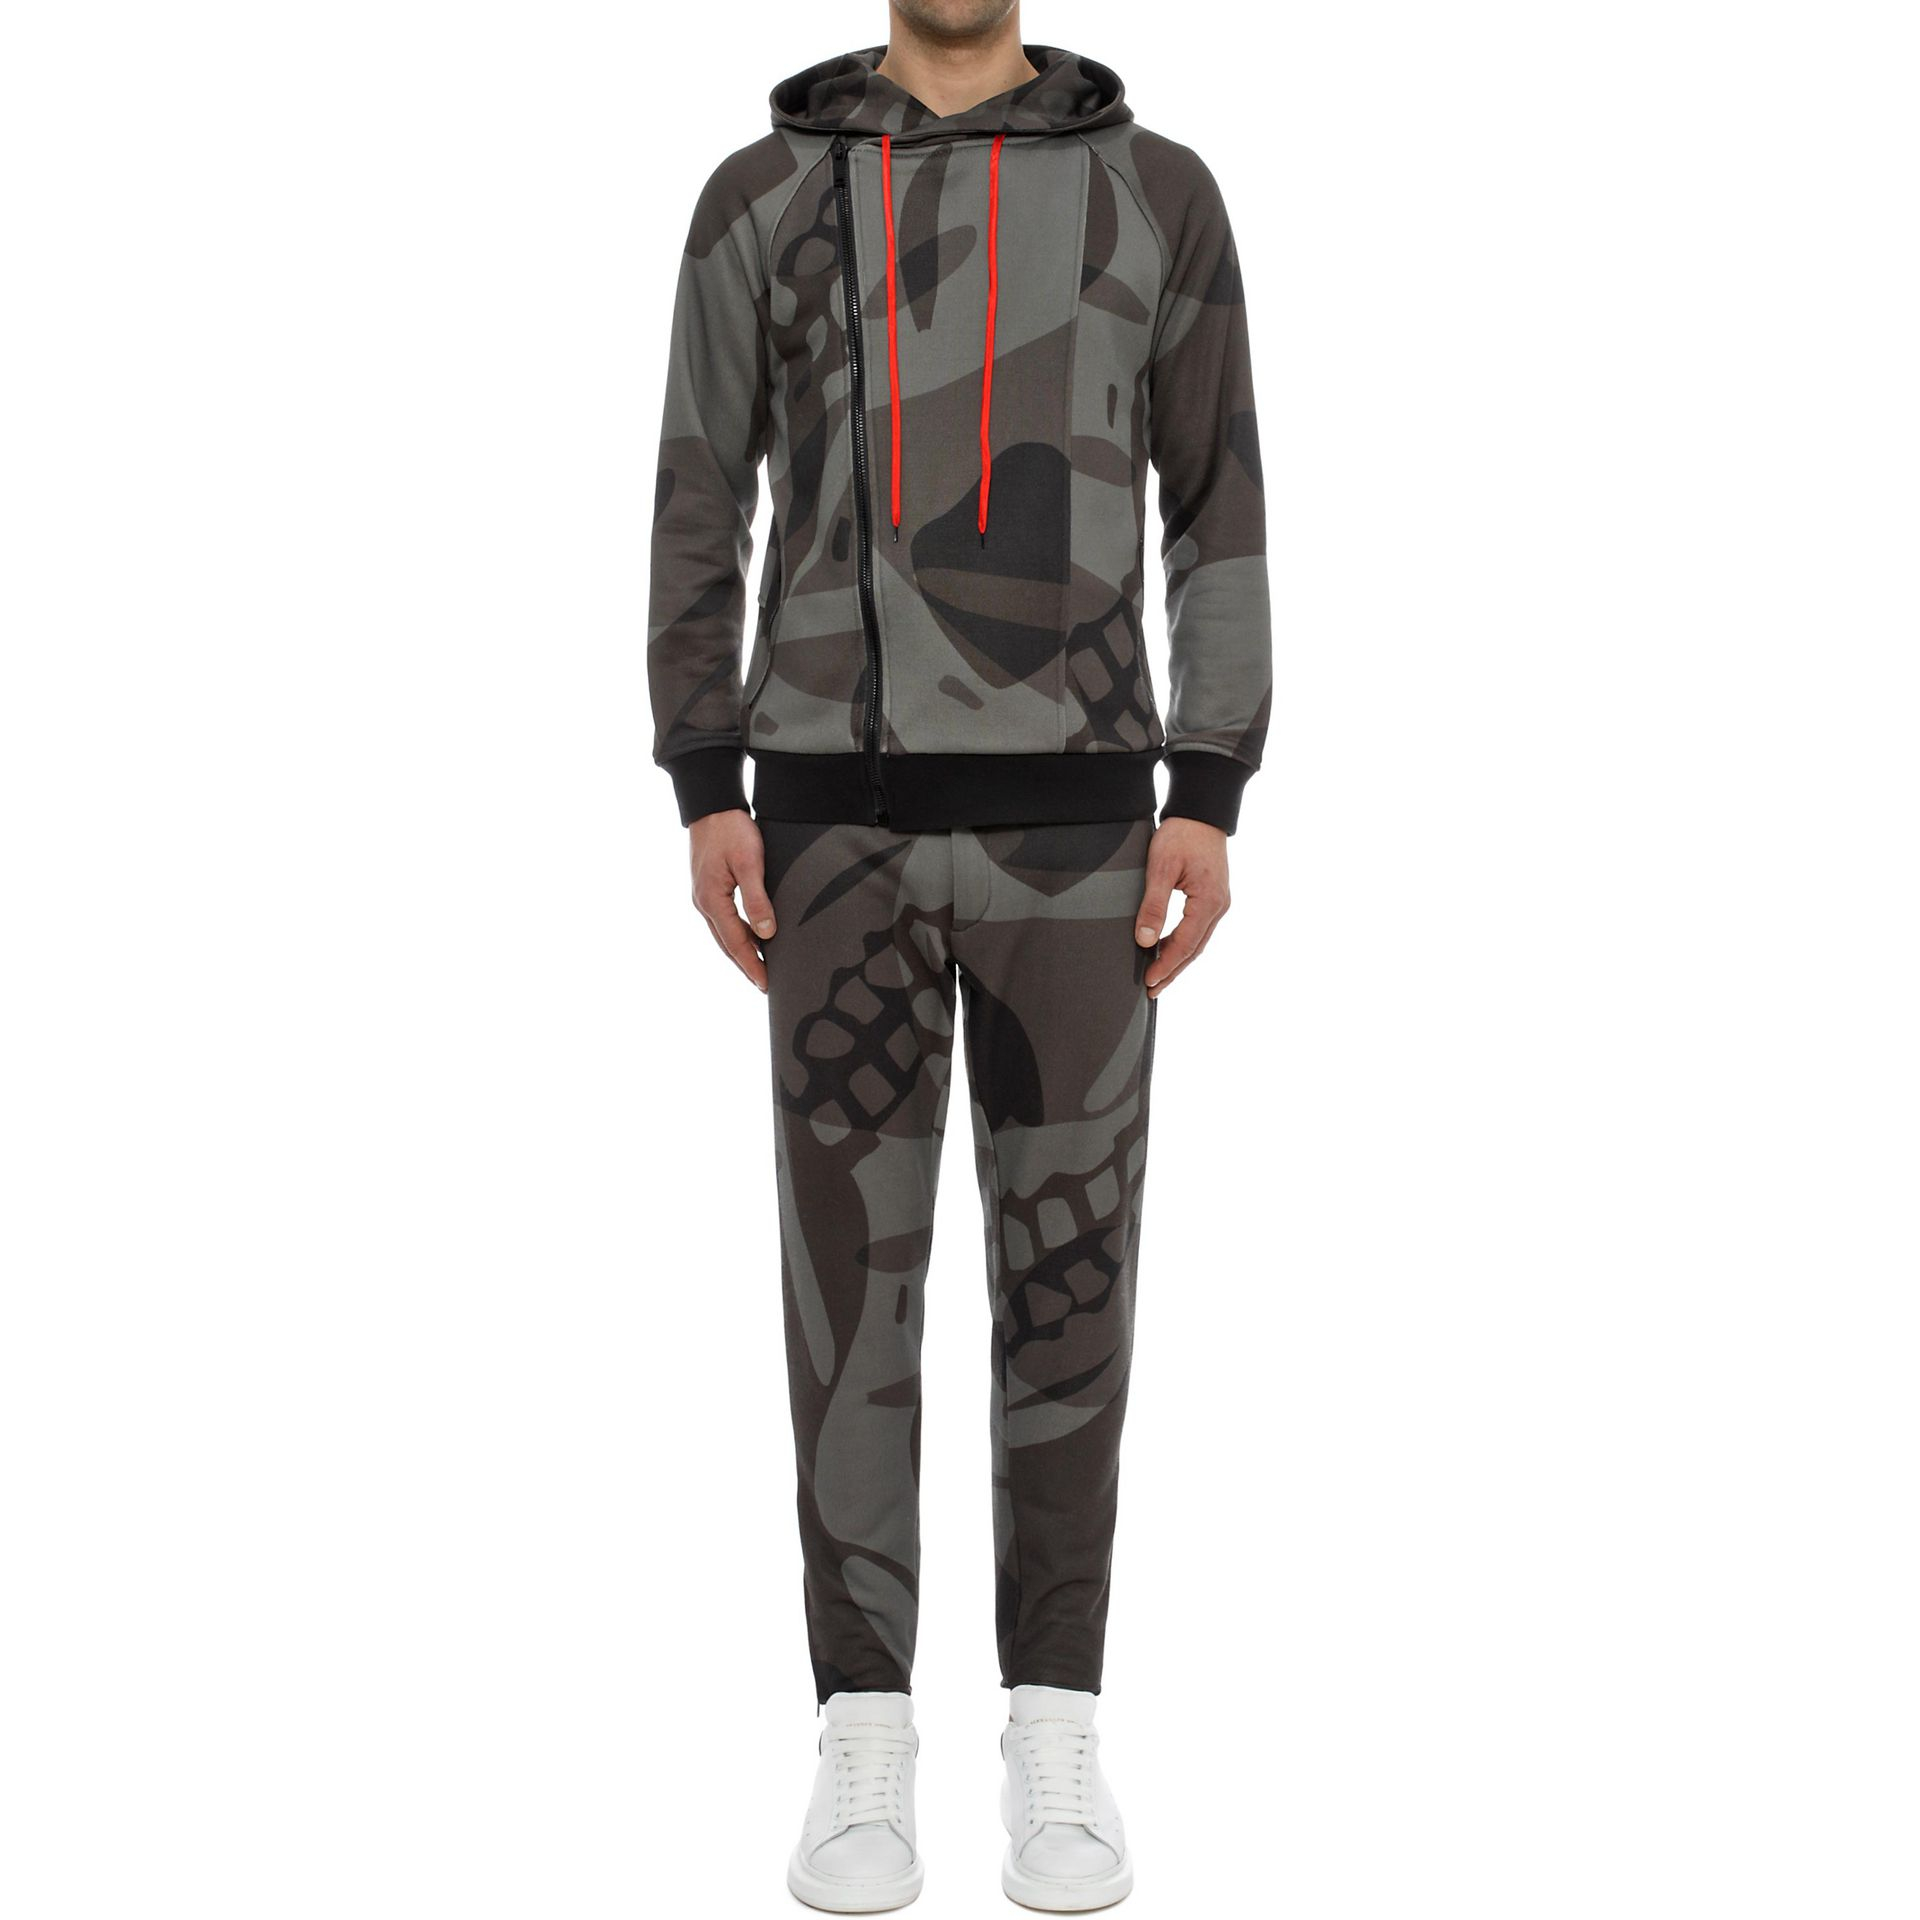 Alexander McQueen Skull Print Sweatshirt Trousers in Graphite/Light Grey (Grey) for Men